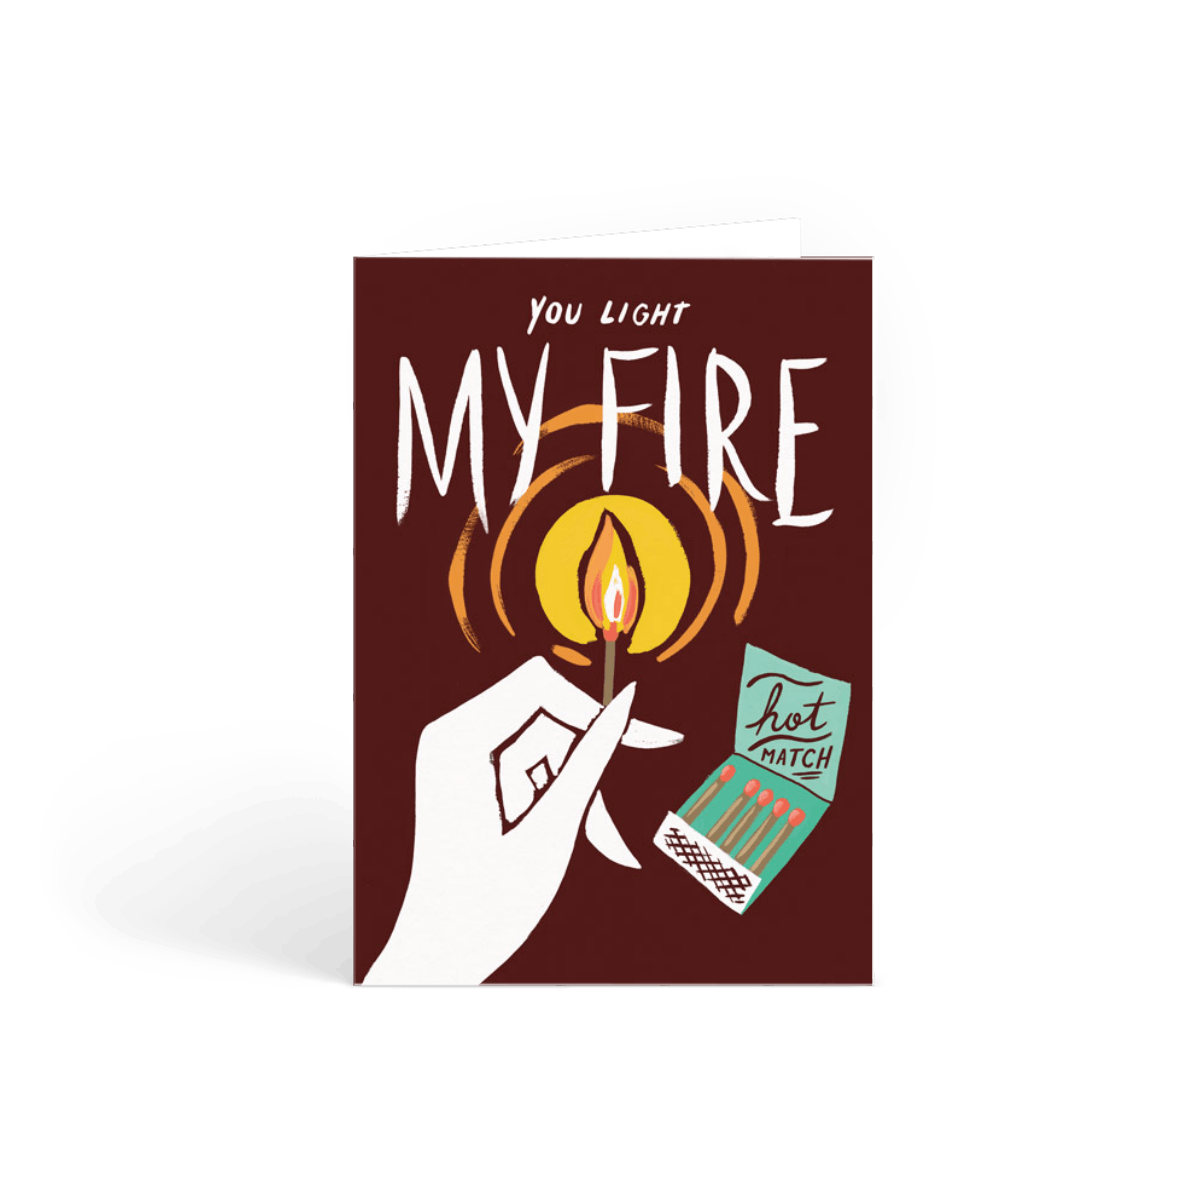 Https%3a%2f%2fwww.papier.com%2fproduct image%2f16485%2f2%2fyou light my fire 4352 front 1484675328.png?ixlib=rb 1.1